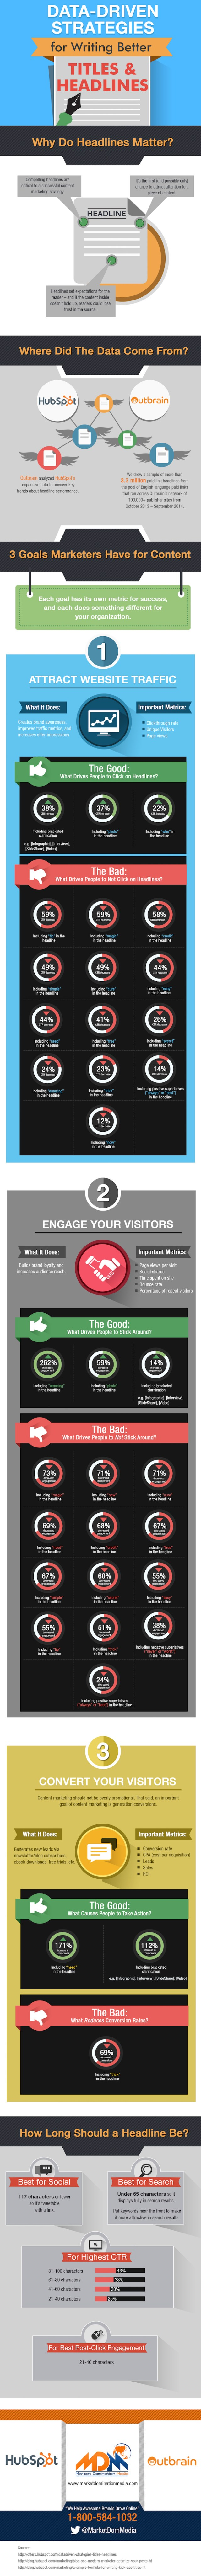 Infographic outlines key tips for creating better headlines